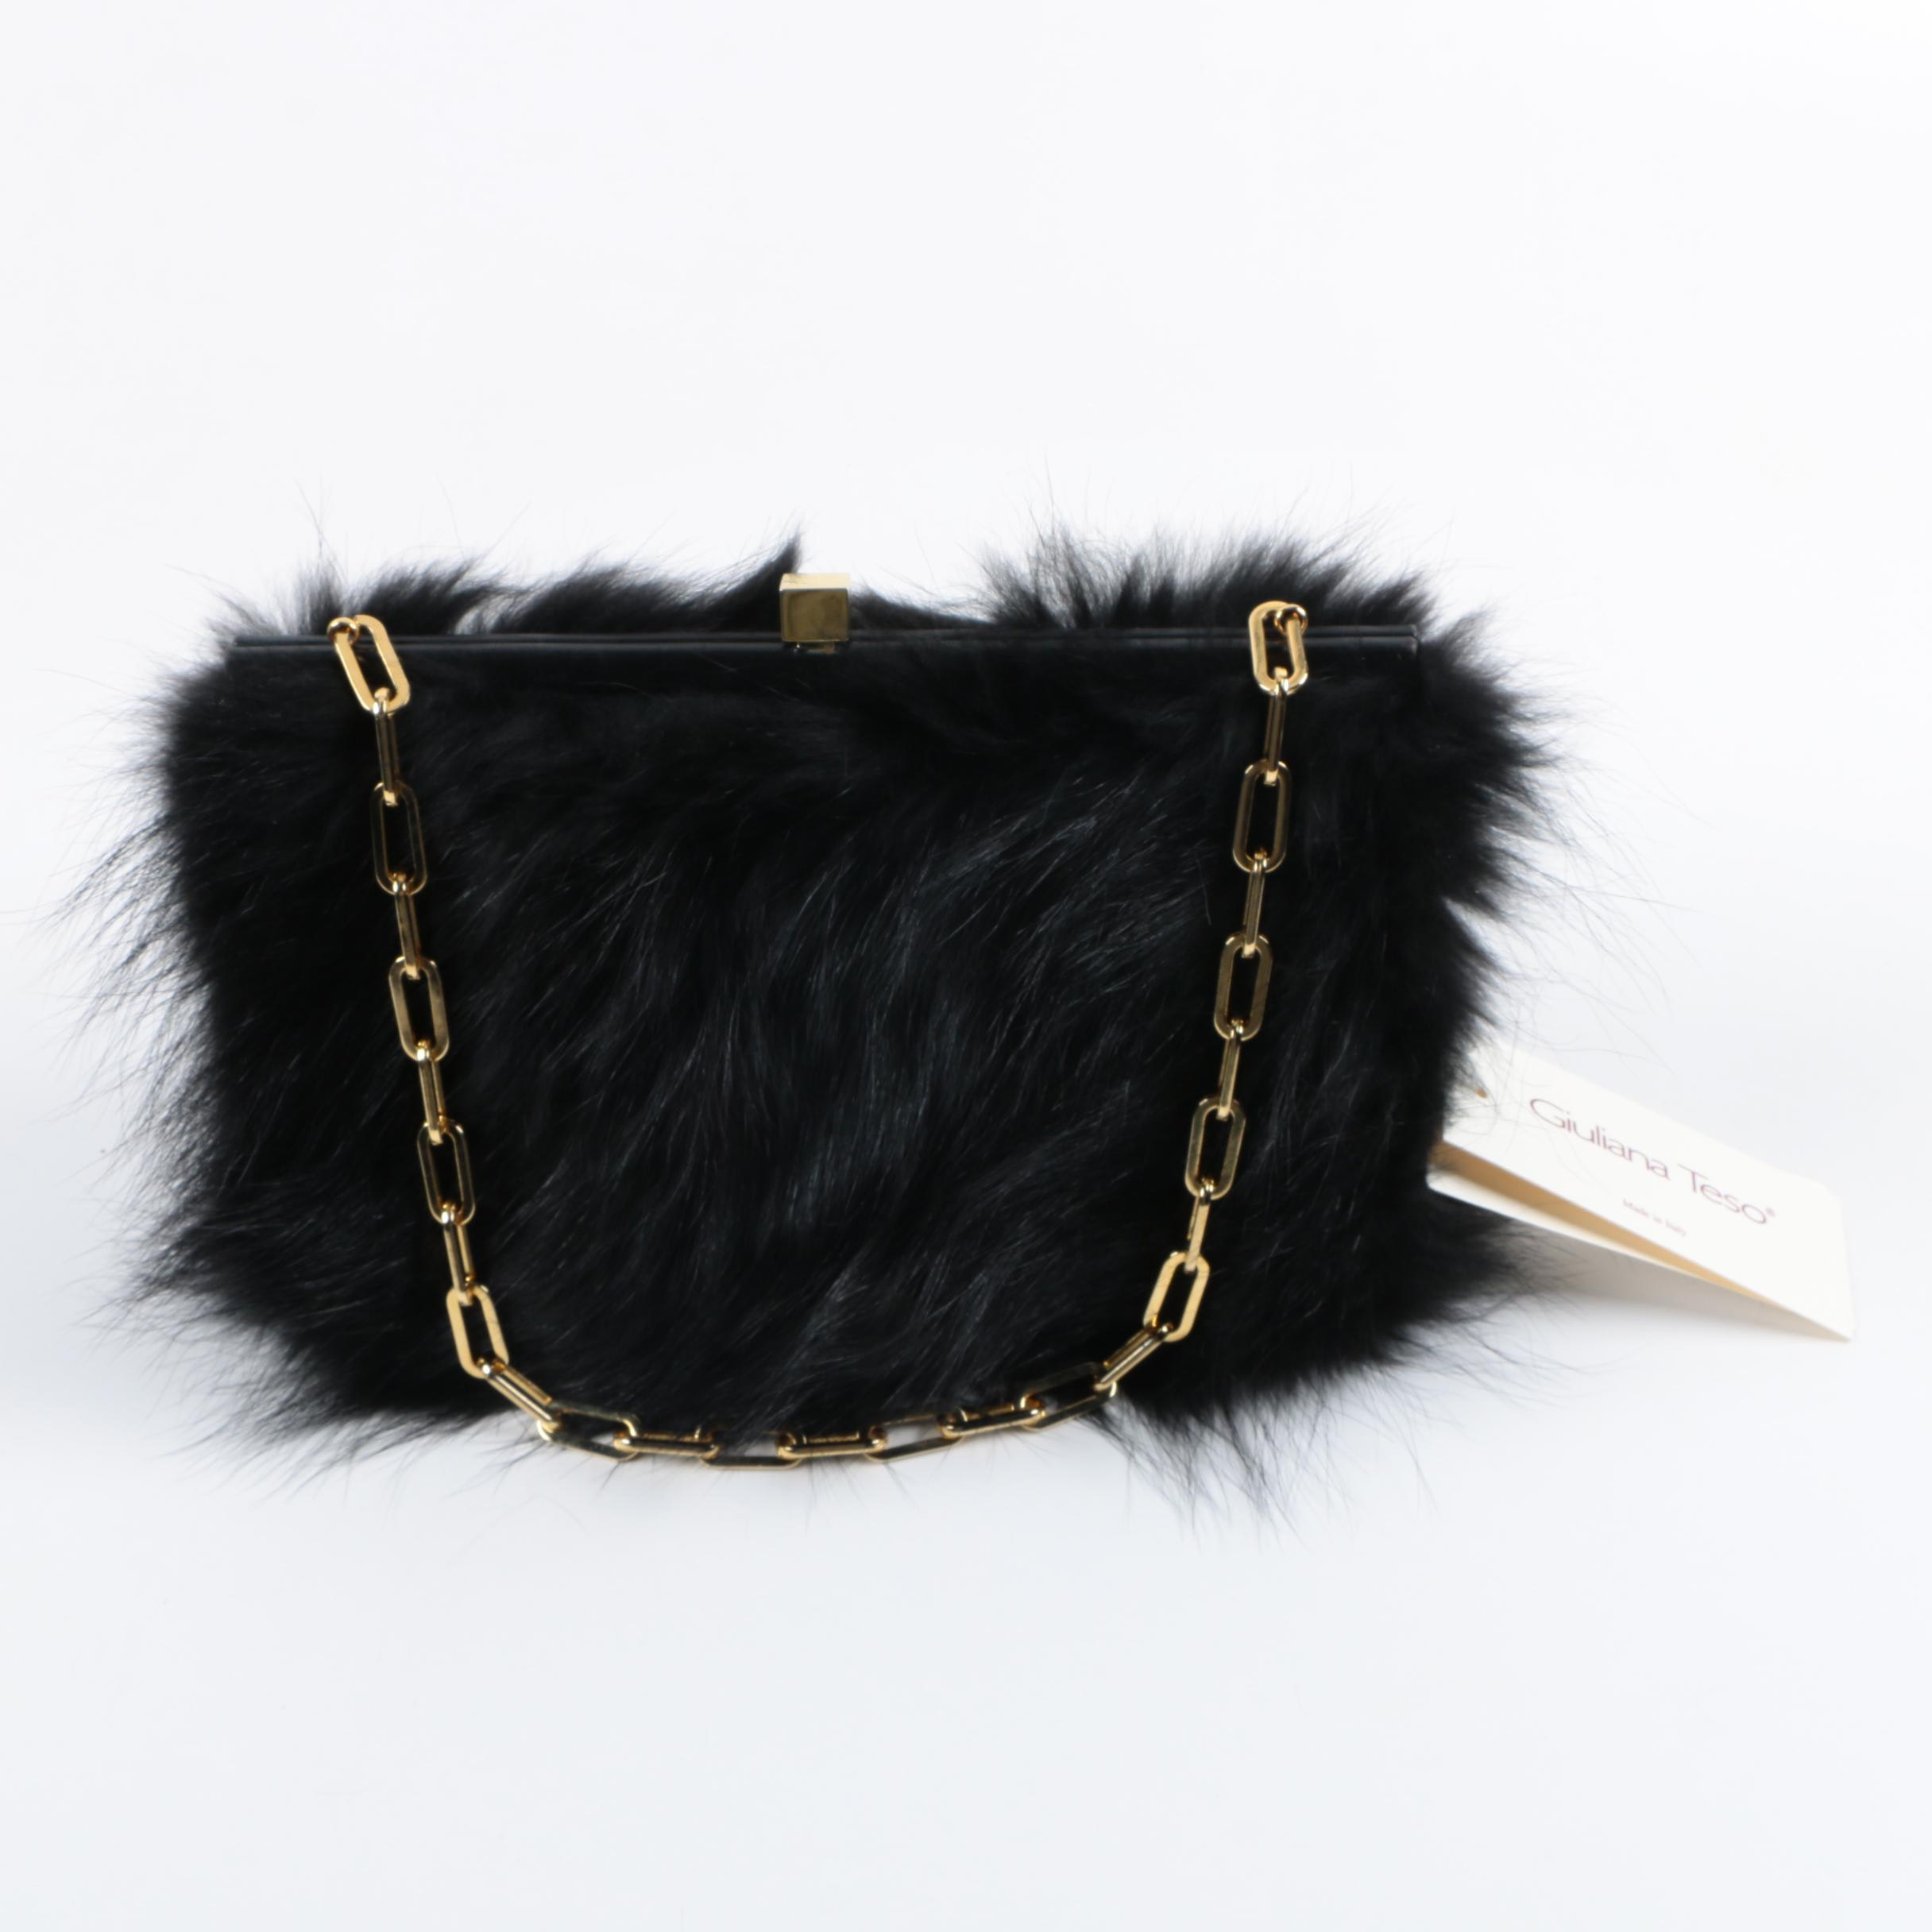 Giuliana Teso for Neiman Marcus Raccoon Fur Handbag